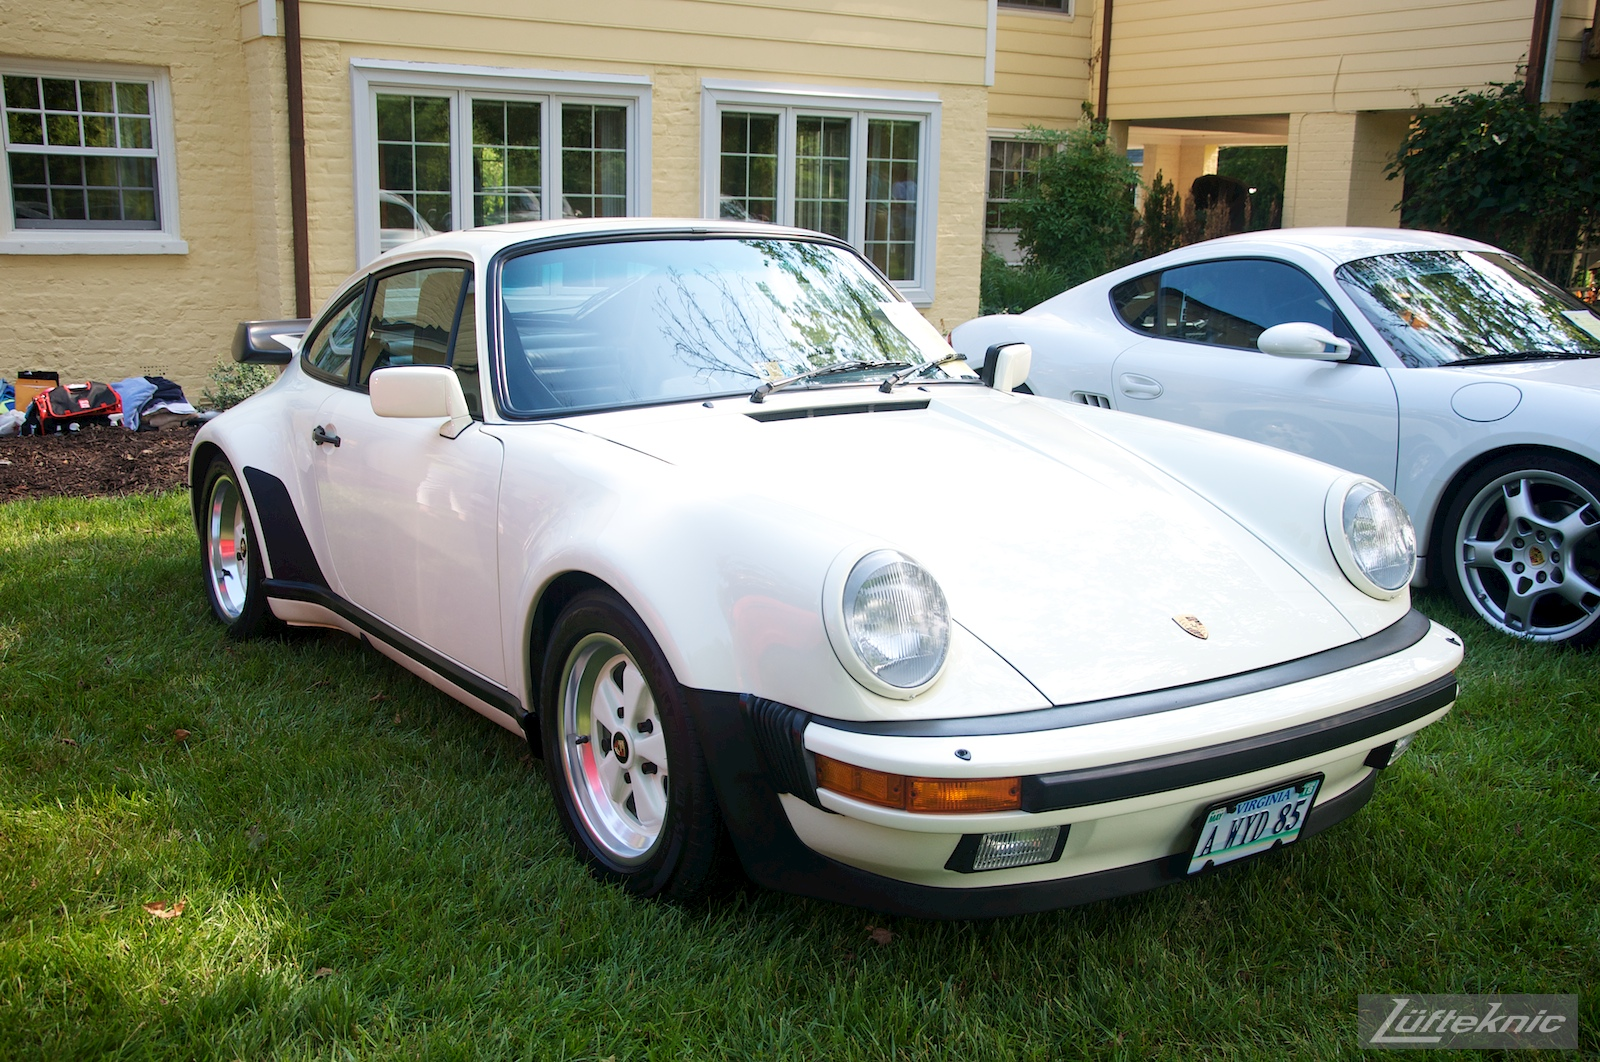 Insanely clean linen white 911 at the Richmond Porsche Meet.